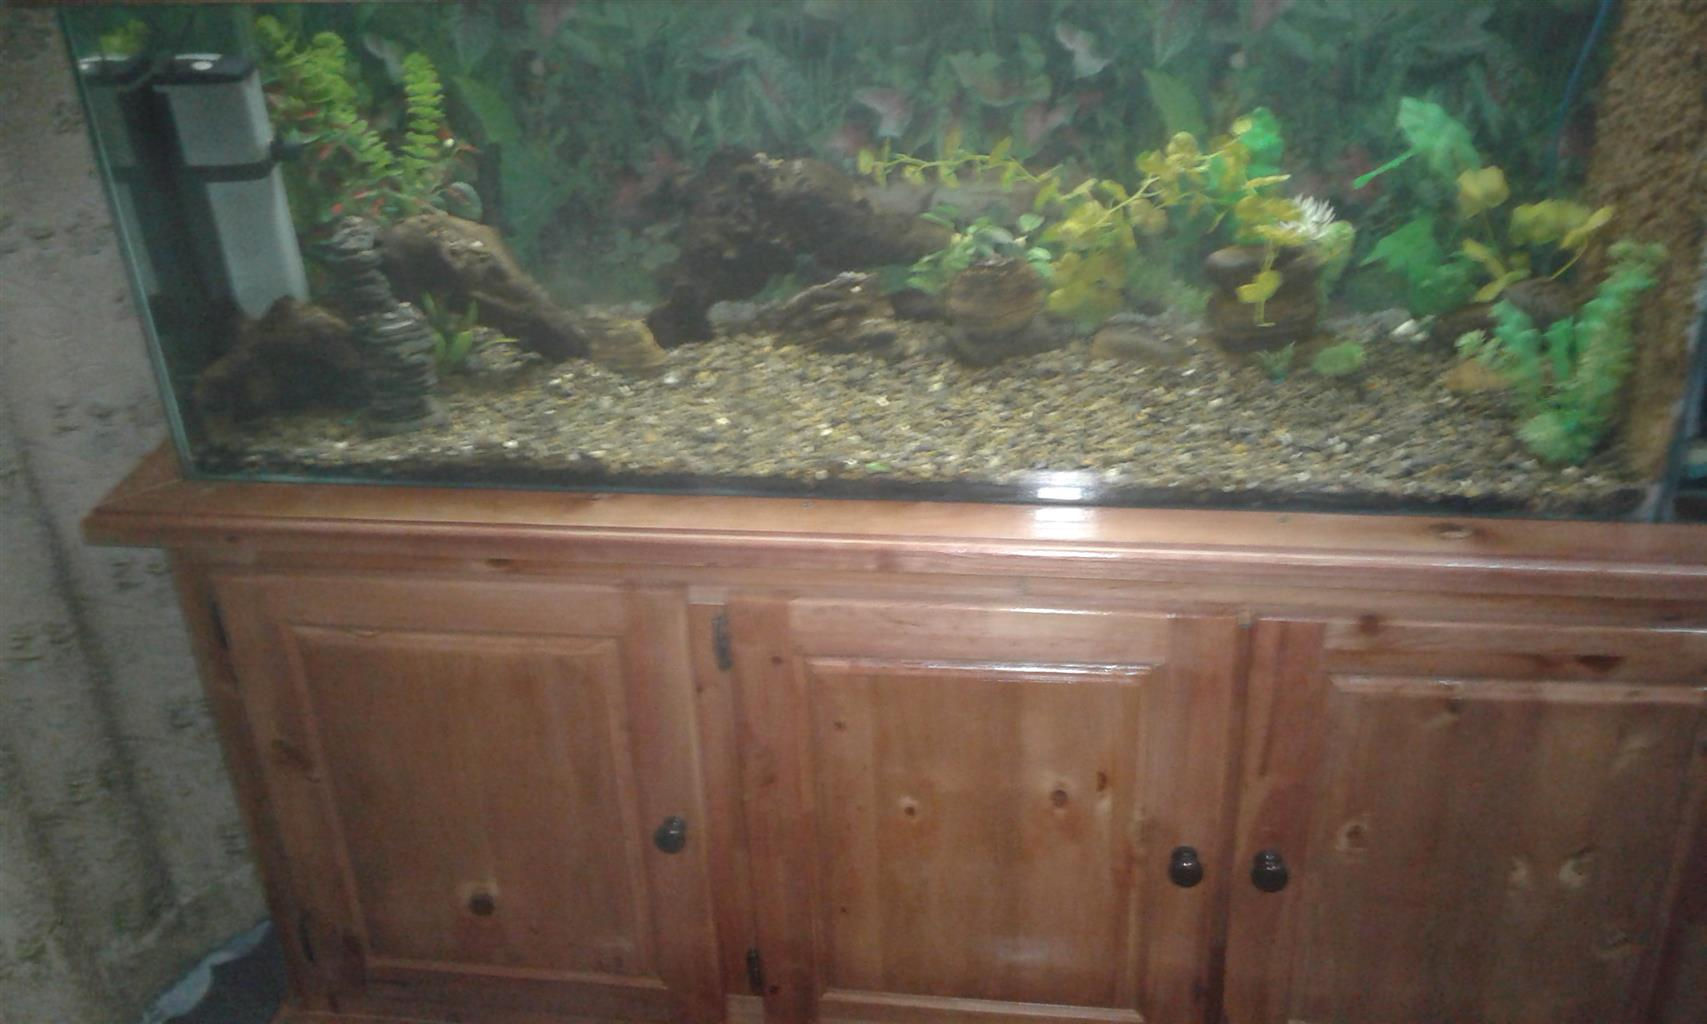 5 VT COMPLETE FISH TANK FOR SALE. | Junk Mail